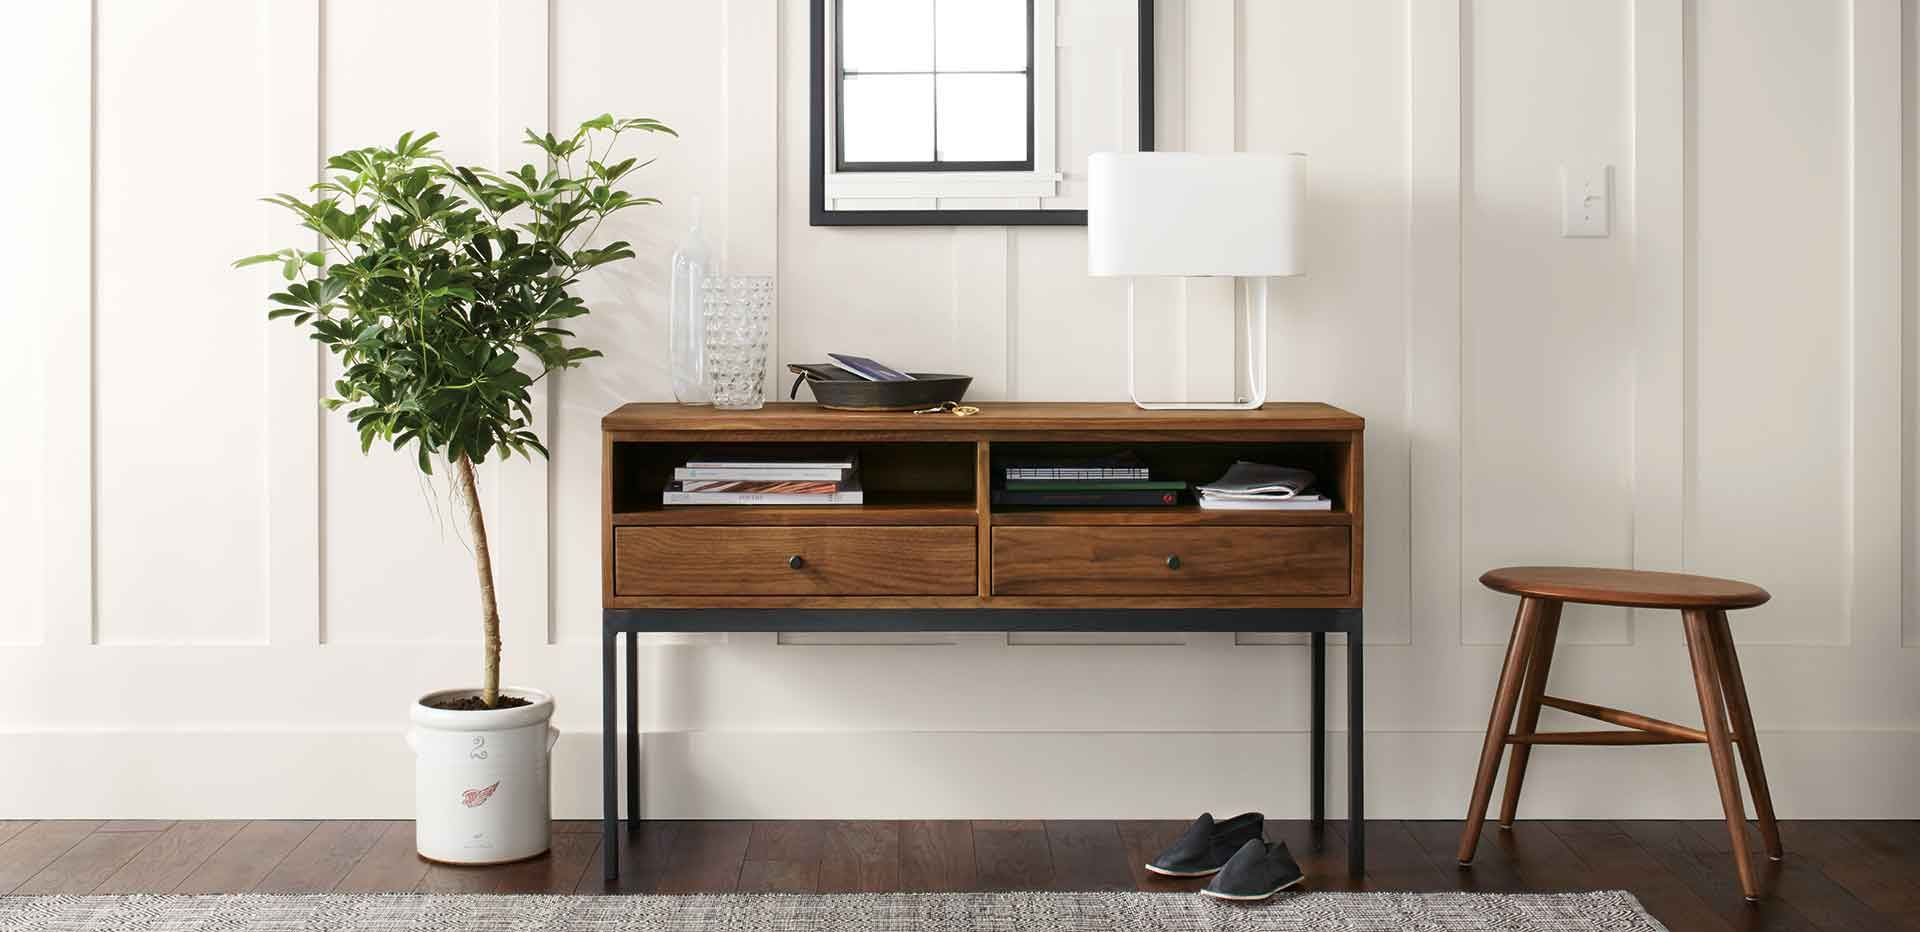 Console Table With Storage Perfect For Small Spaces Modern